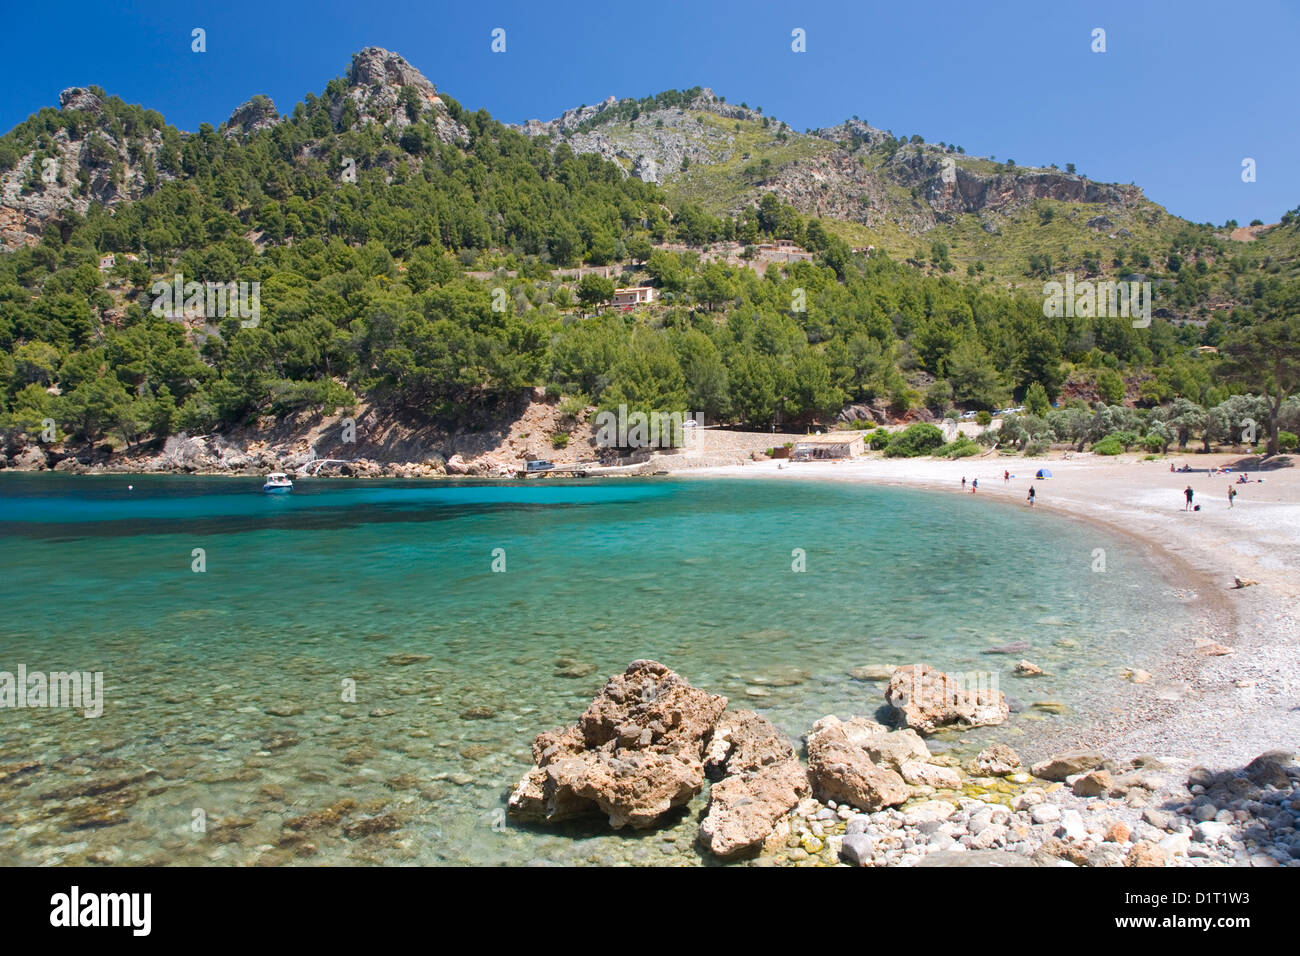 Sa Calobra, Mallorca, Balearic Islands, Spain. View across the clear turquoise waters of Cala Tuent. - Stock Image